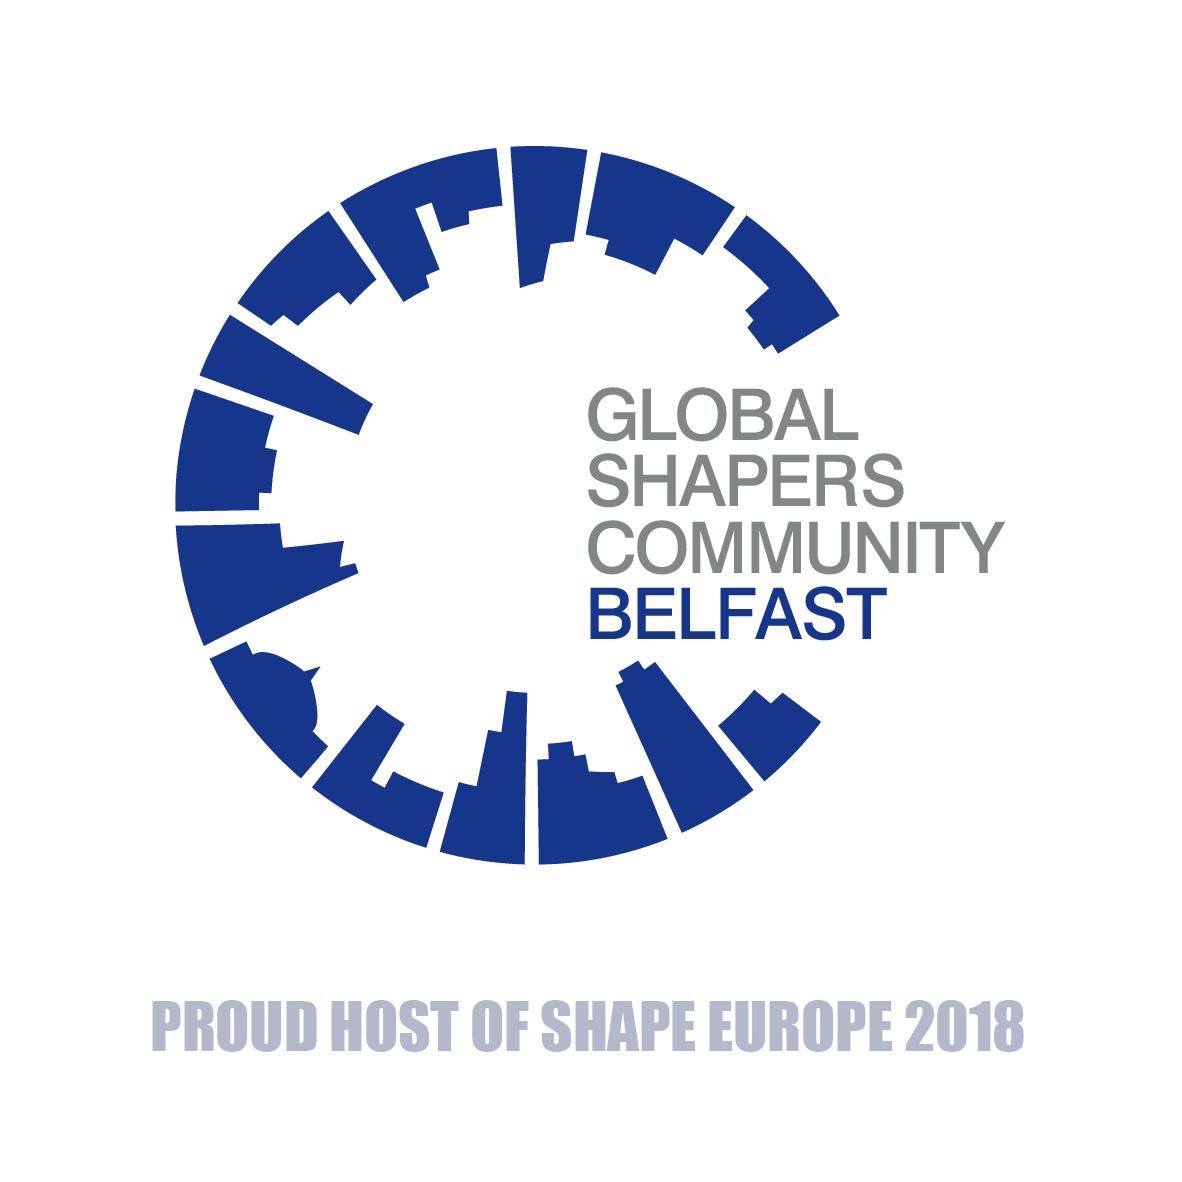 Belfast Global Shapers